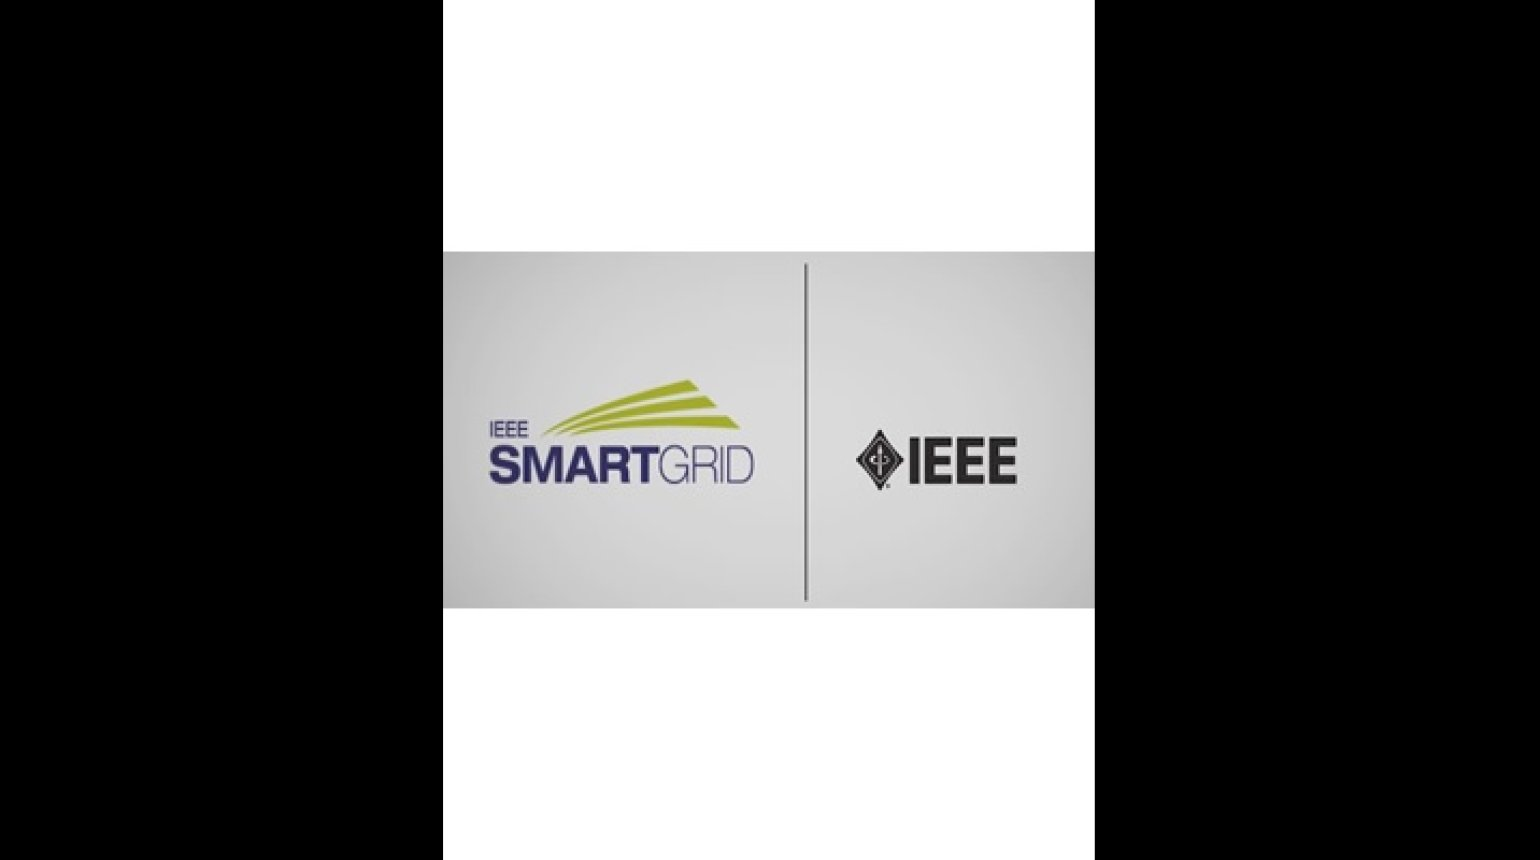 About IEEE Smart Grid